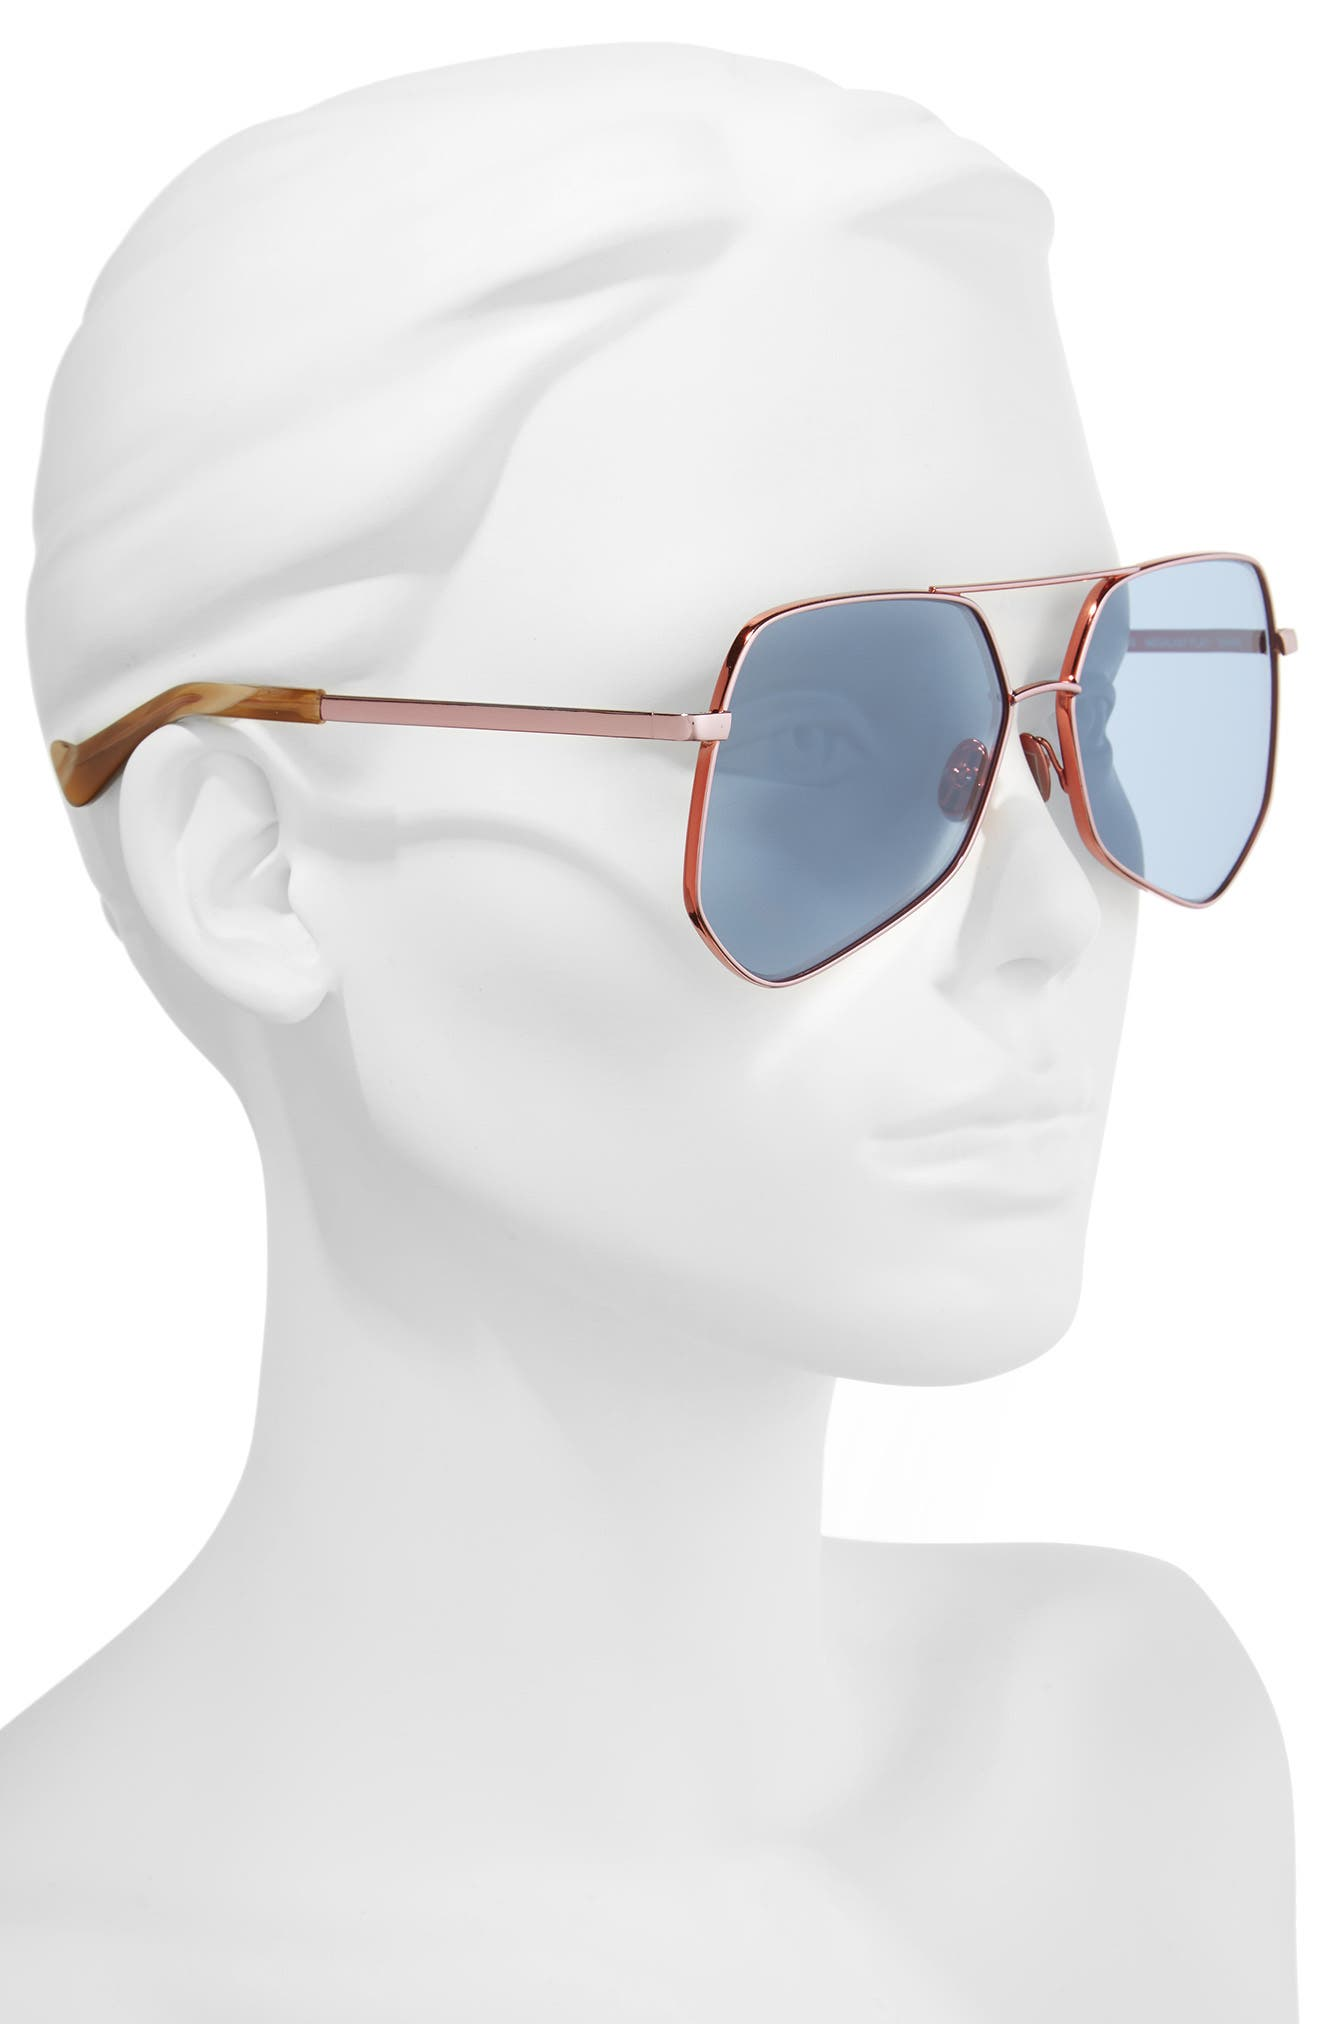 Megalast Flat 61mm Sunglasses,                             Alternate thumbnail 2, color,                             COPPER PINK / LIGHT BLUE